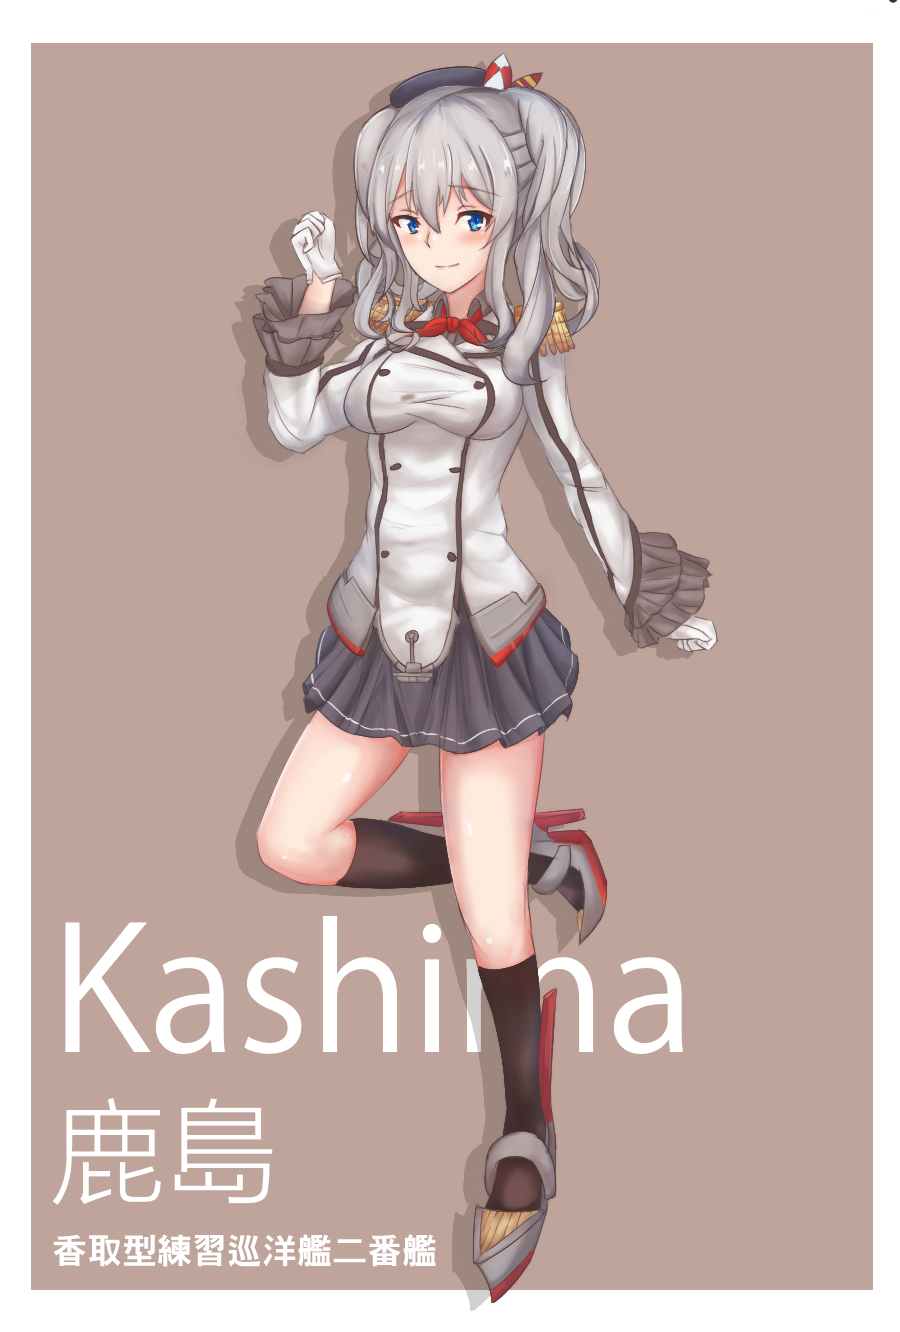 1girl black_legwear black_skirt blue_eyes border breasts brown_background character_name double-breasted epaulettes frilled_sleeves frills gloves hat highres kantai_collection kashima_(kantai_collection) kneehighs looking_at_viewer medium_breasts red_ribbon ribbon rigging saucer silver_hair skirt smile solo thighs two_side_up uniform white_border white_gloves yusha_(m-gata)